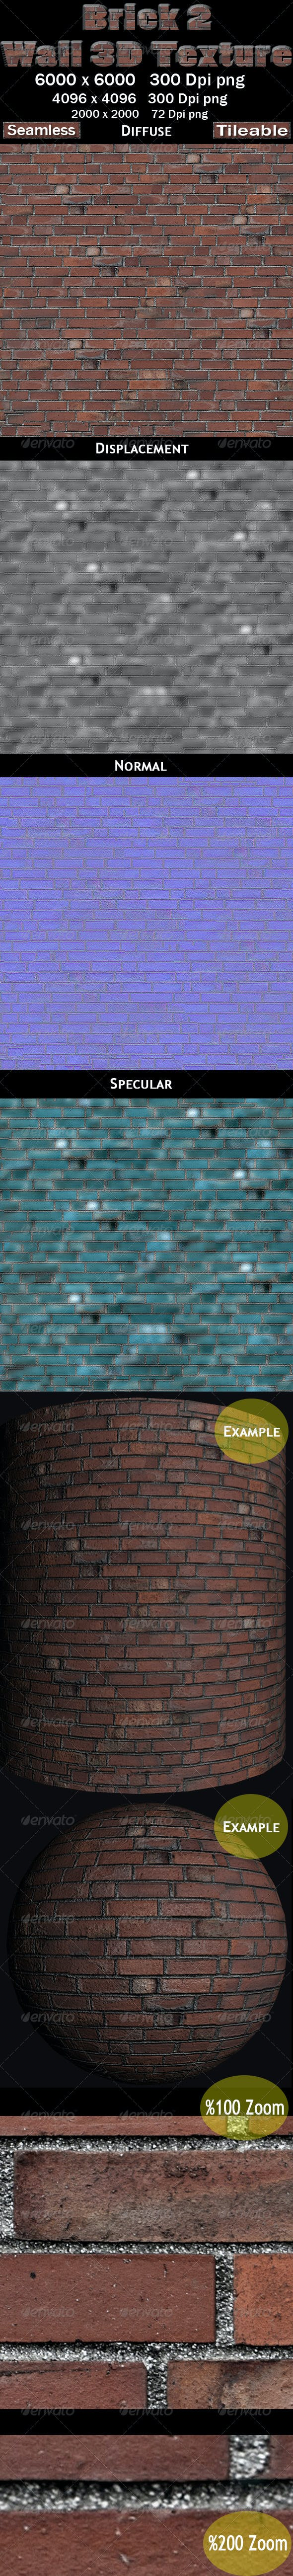 Brick Wall 2 3D Texture - 3DOcean Item for Sale